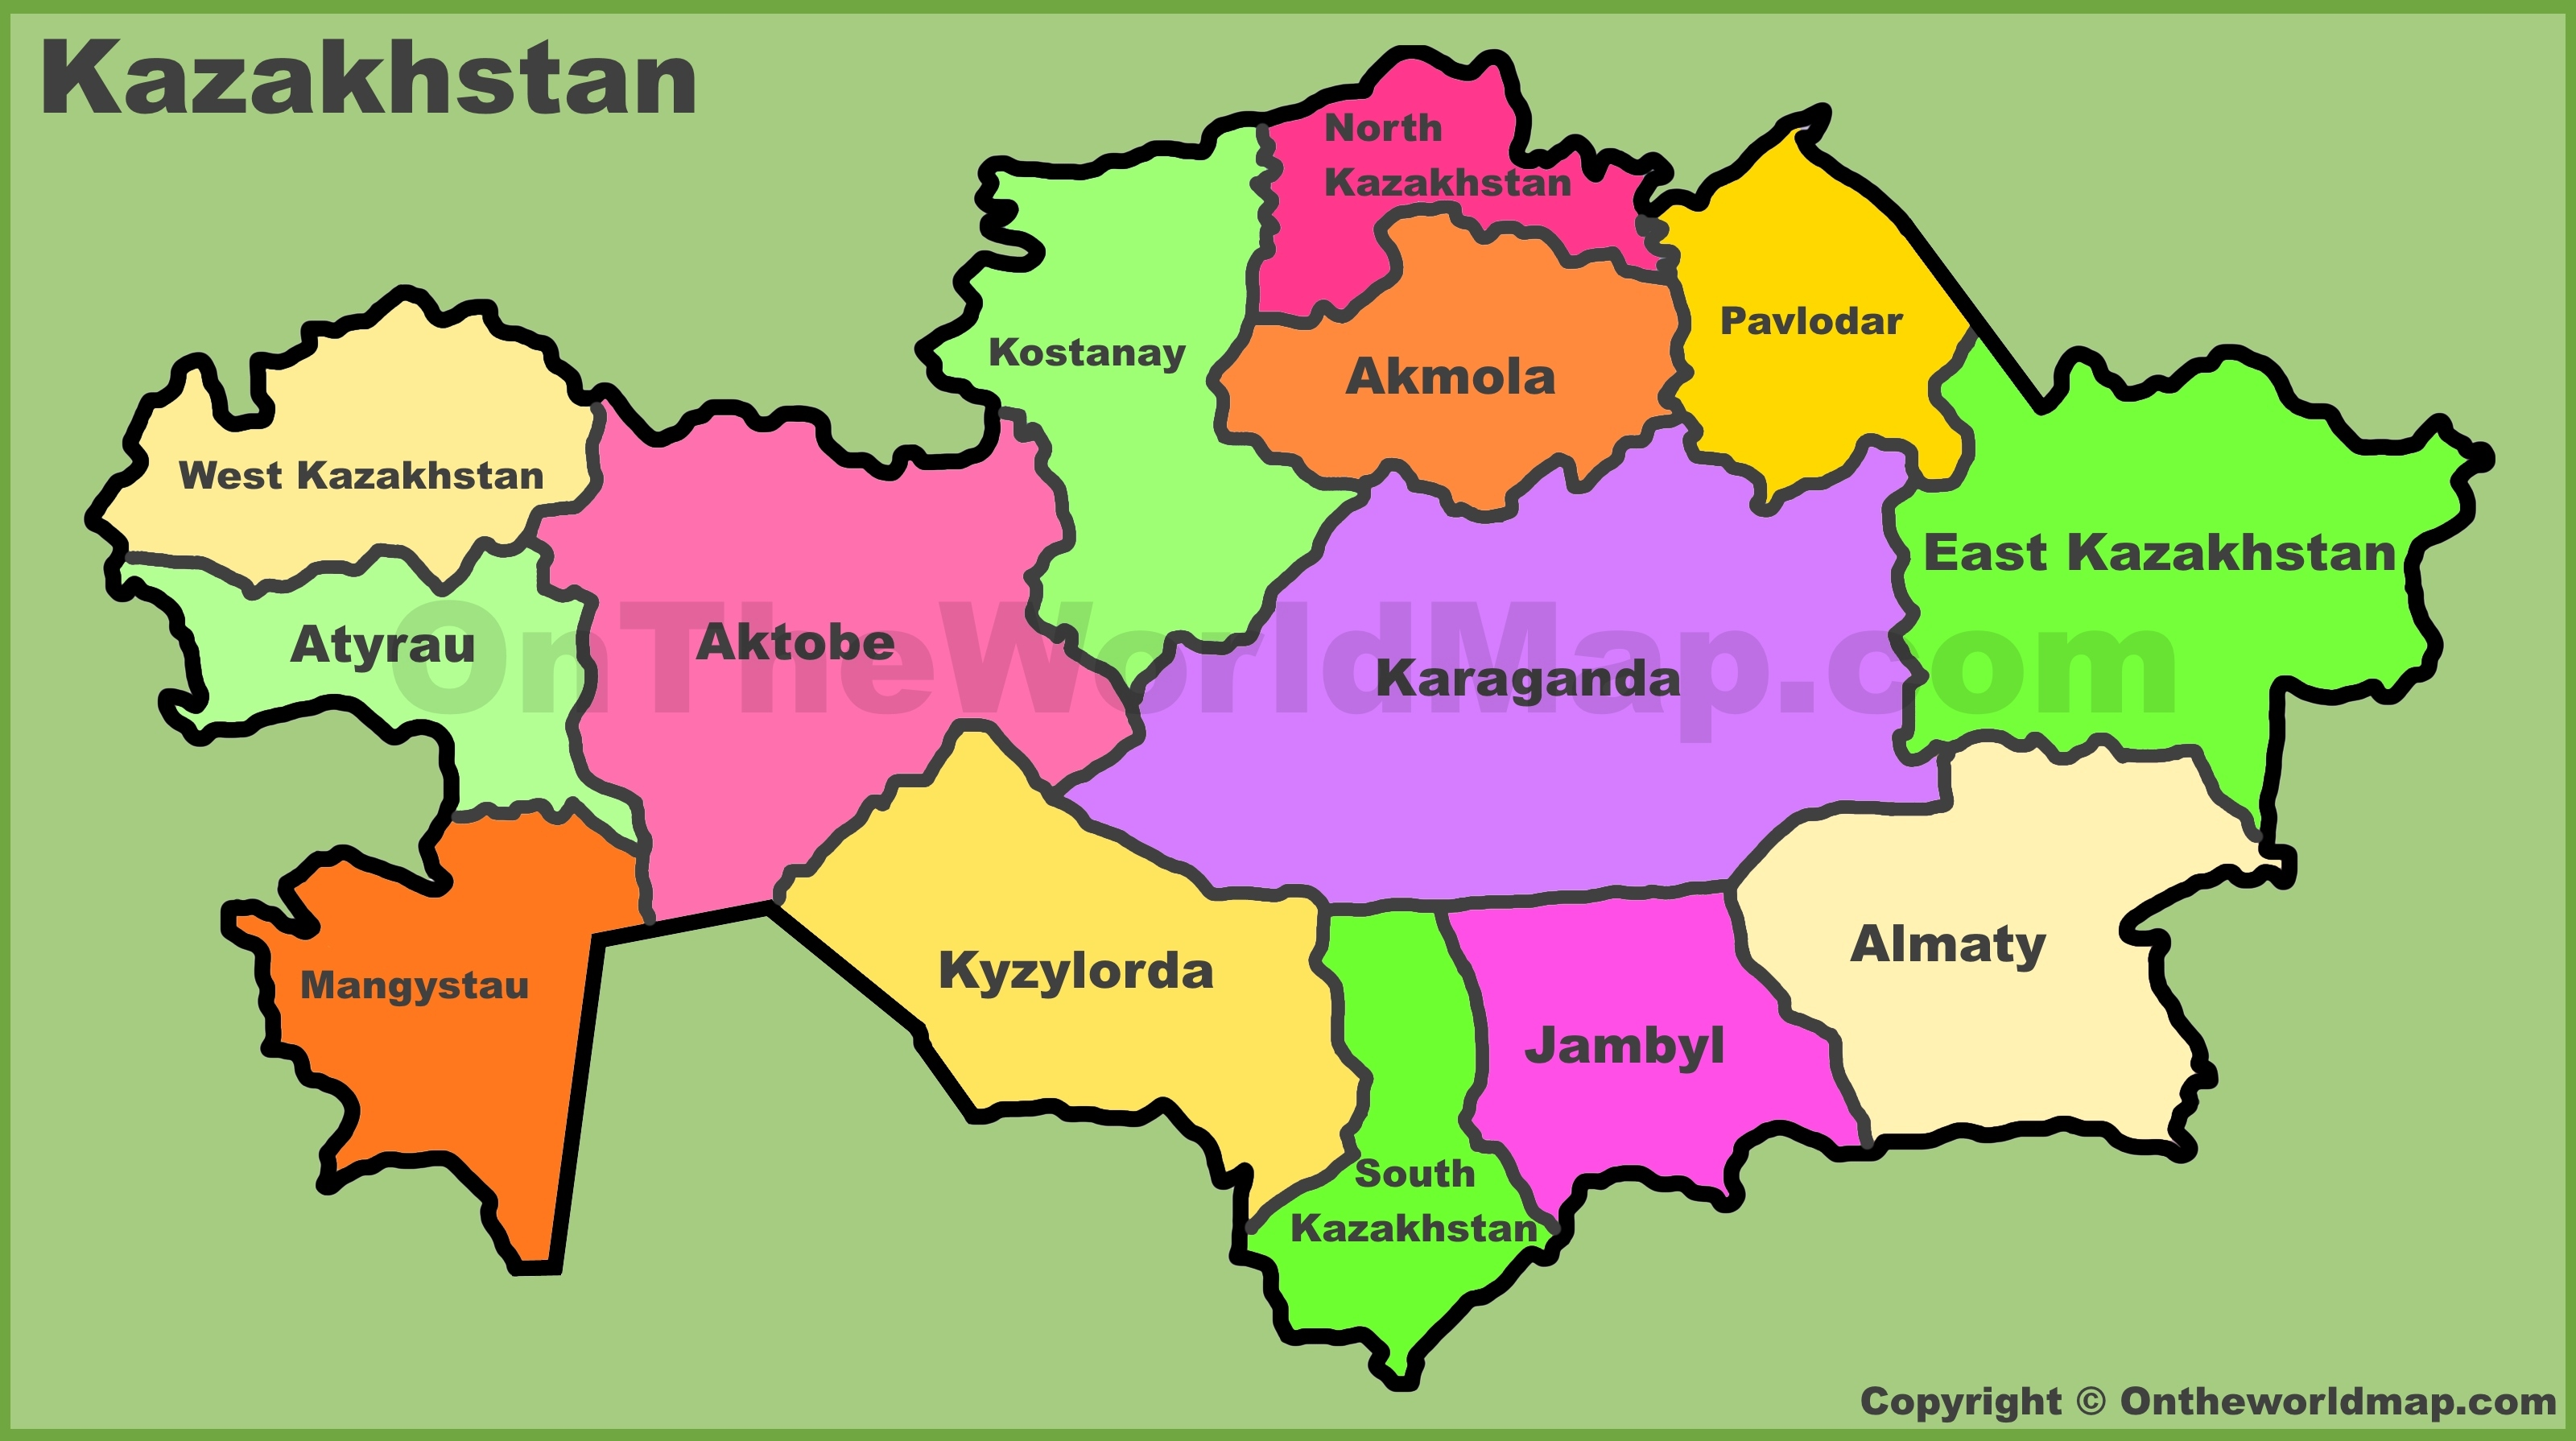 Kazakhstan Political Map.Kazakhstan Maps Maps Of Kazakhstan